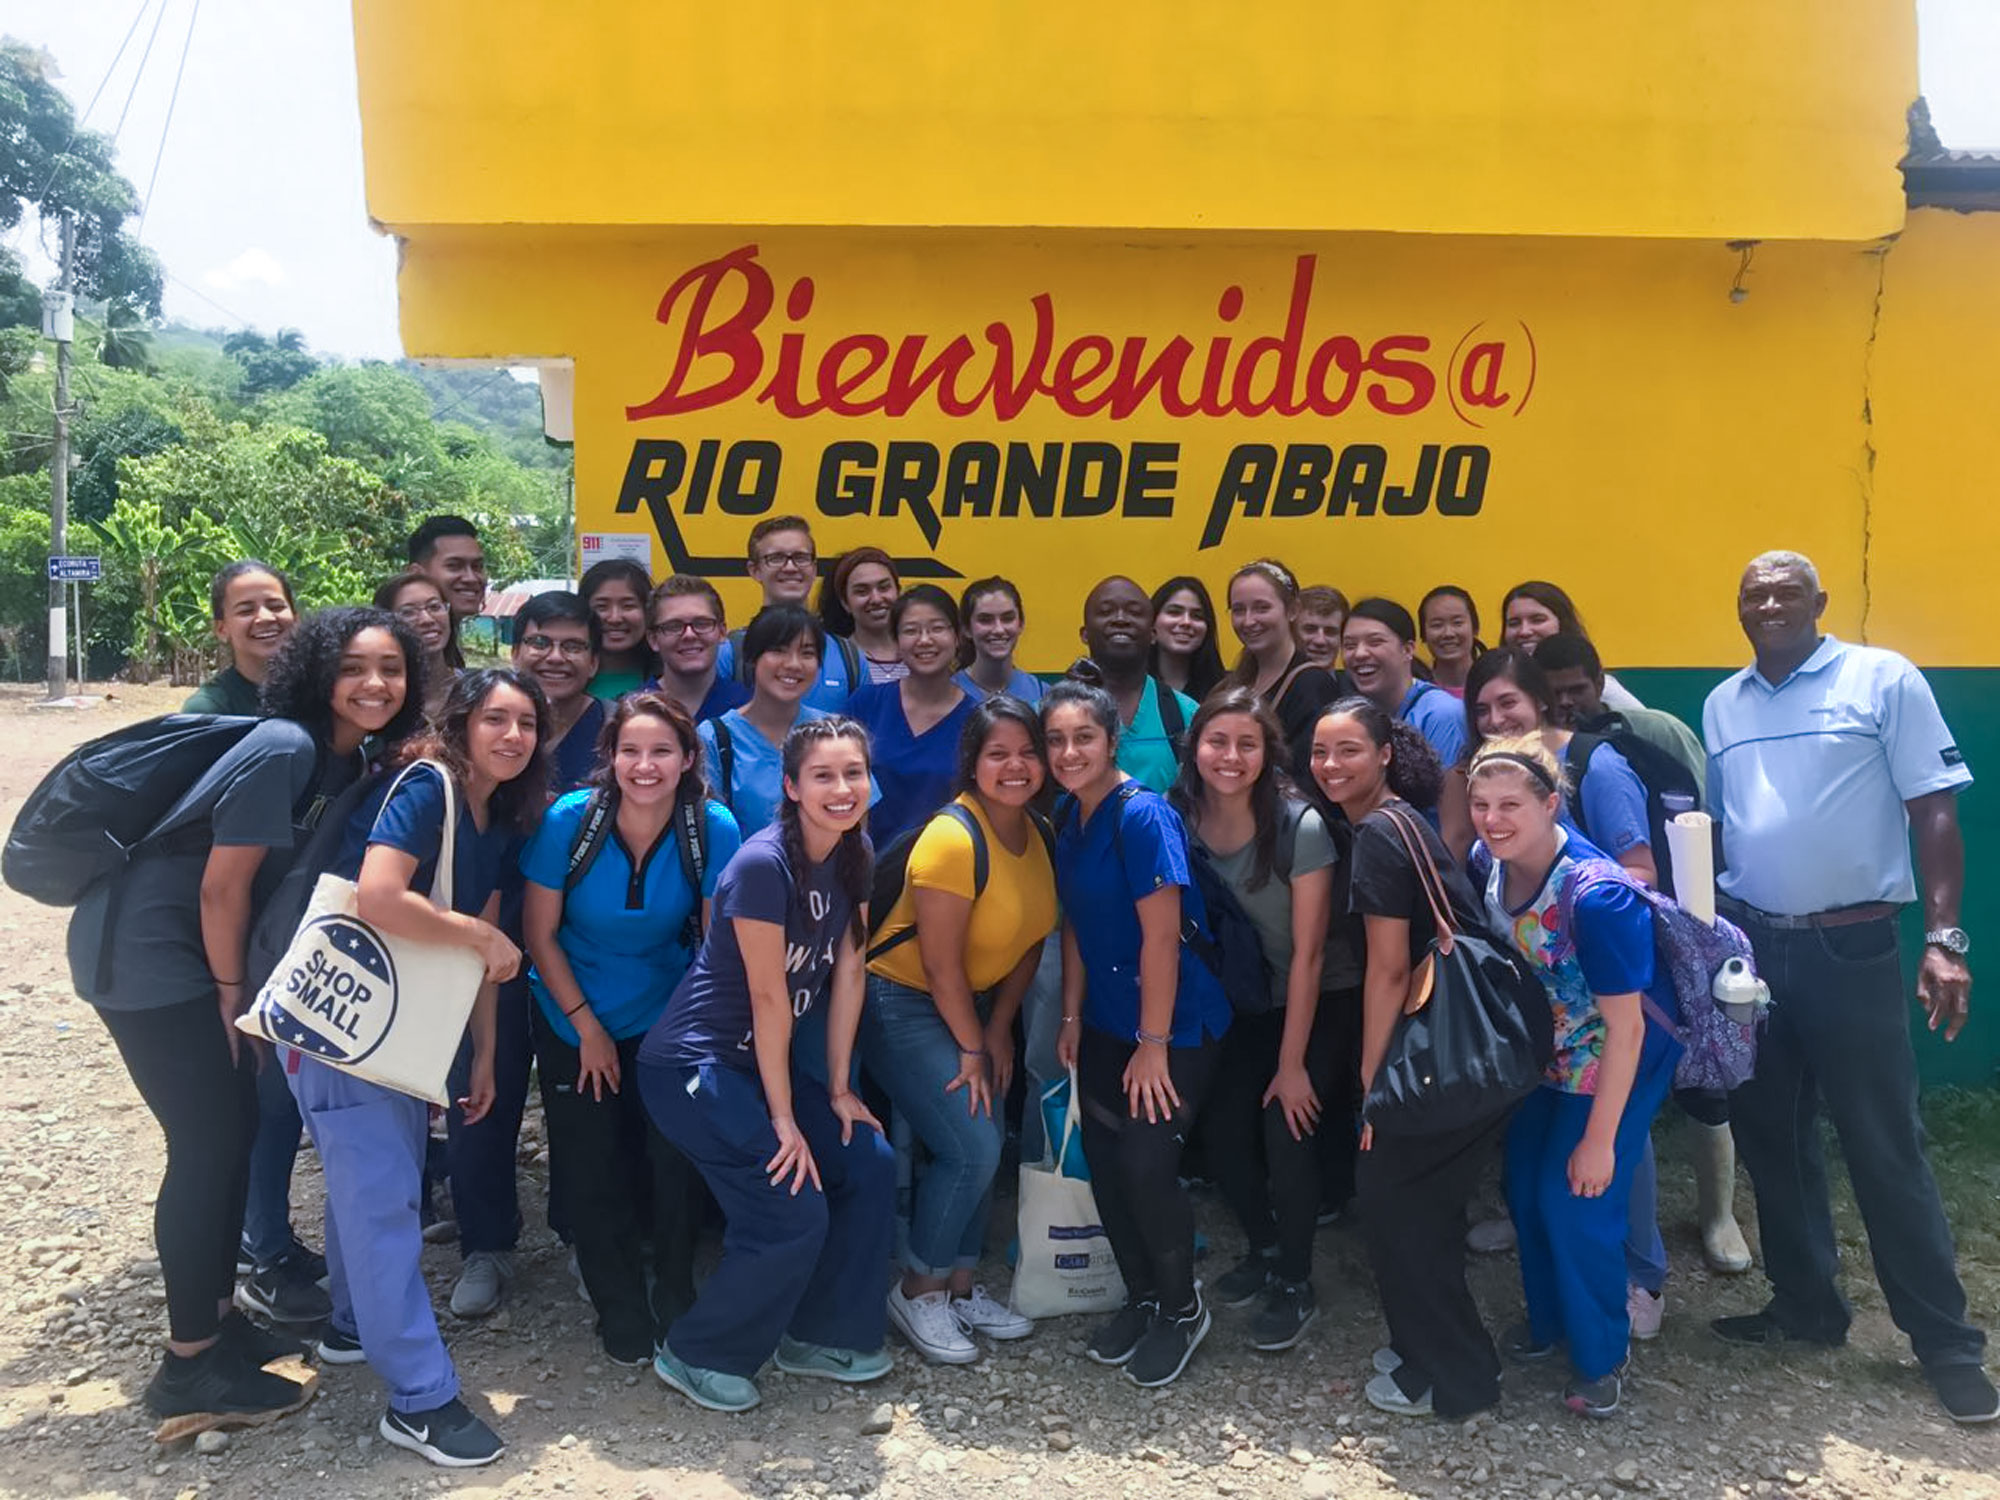 Students pose in front of a welcome sign in the Dominican Republic.